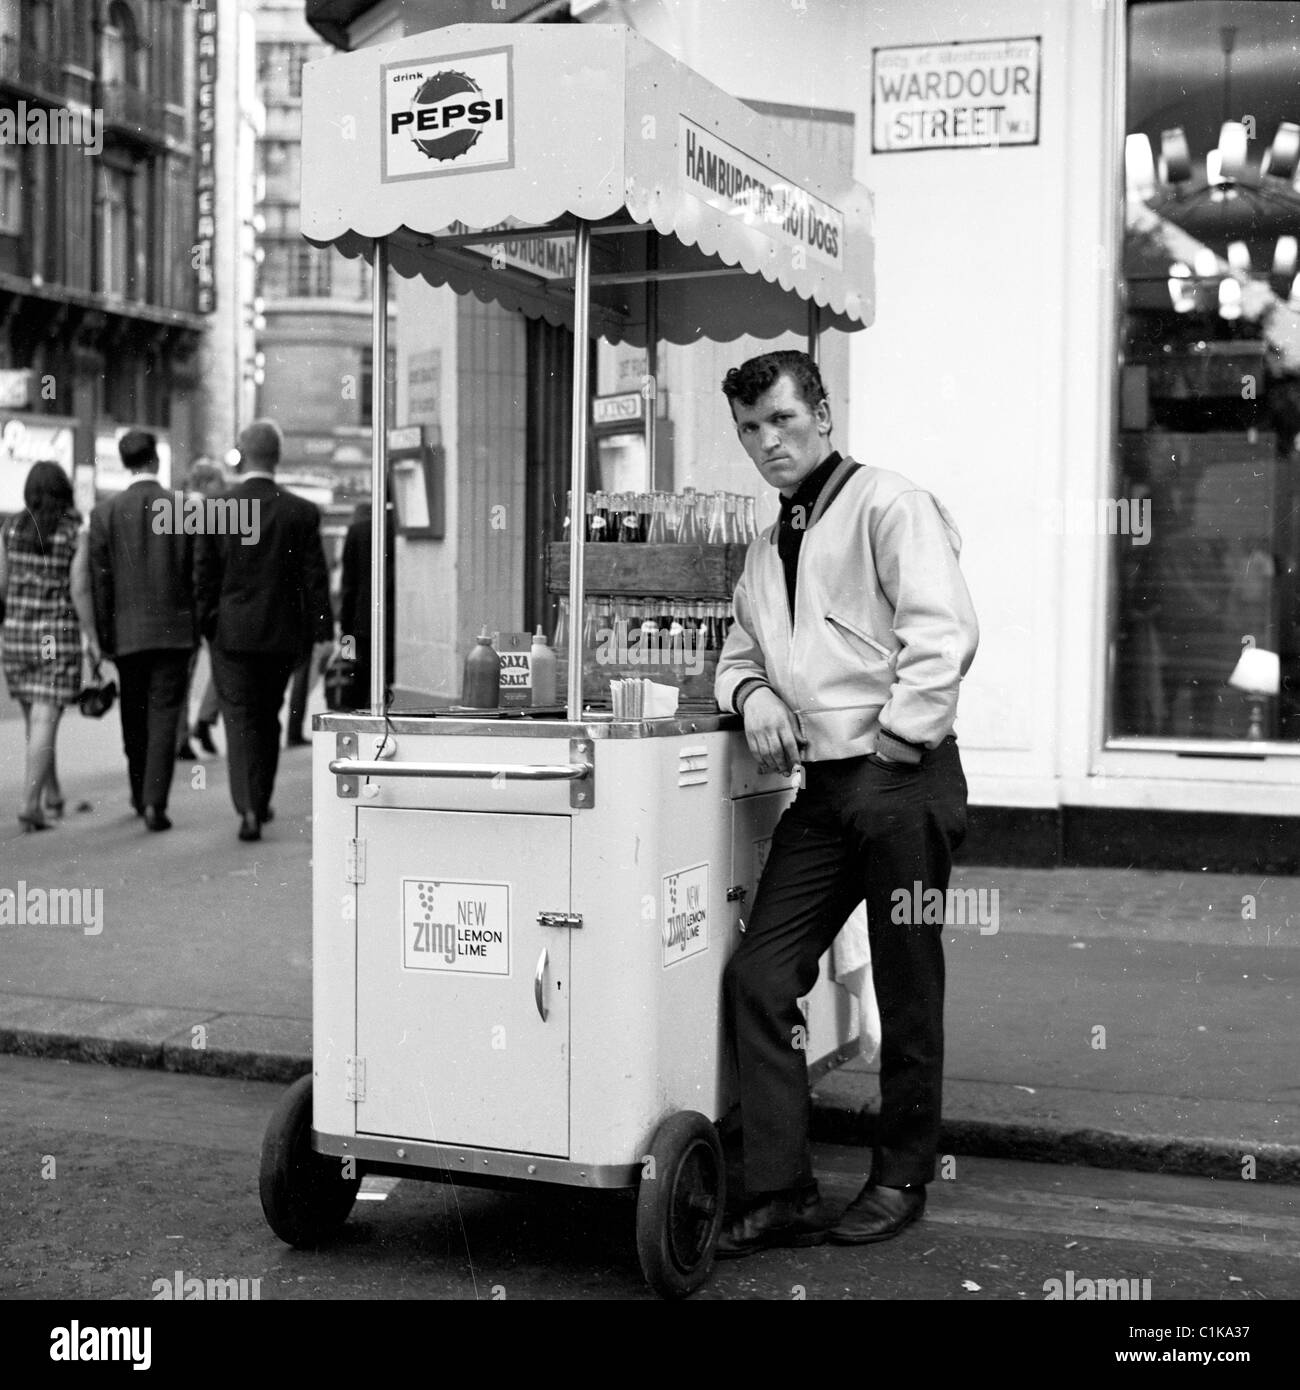 196s, London. Portable hot dog stand ans seller on the corner of Wardour Street, in this historical picture by J - Stock Image